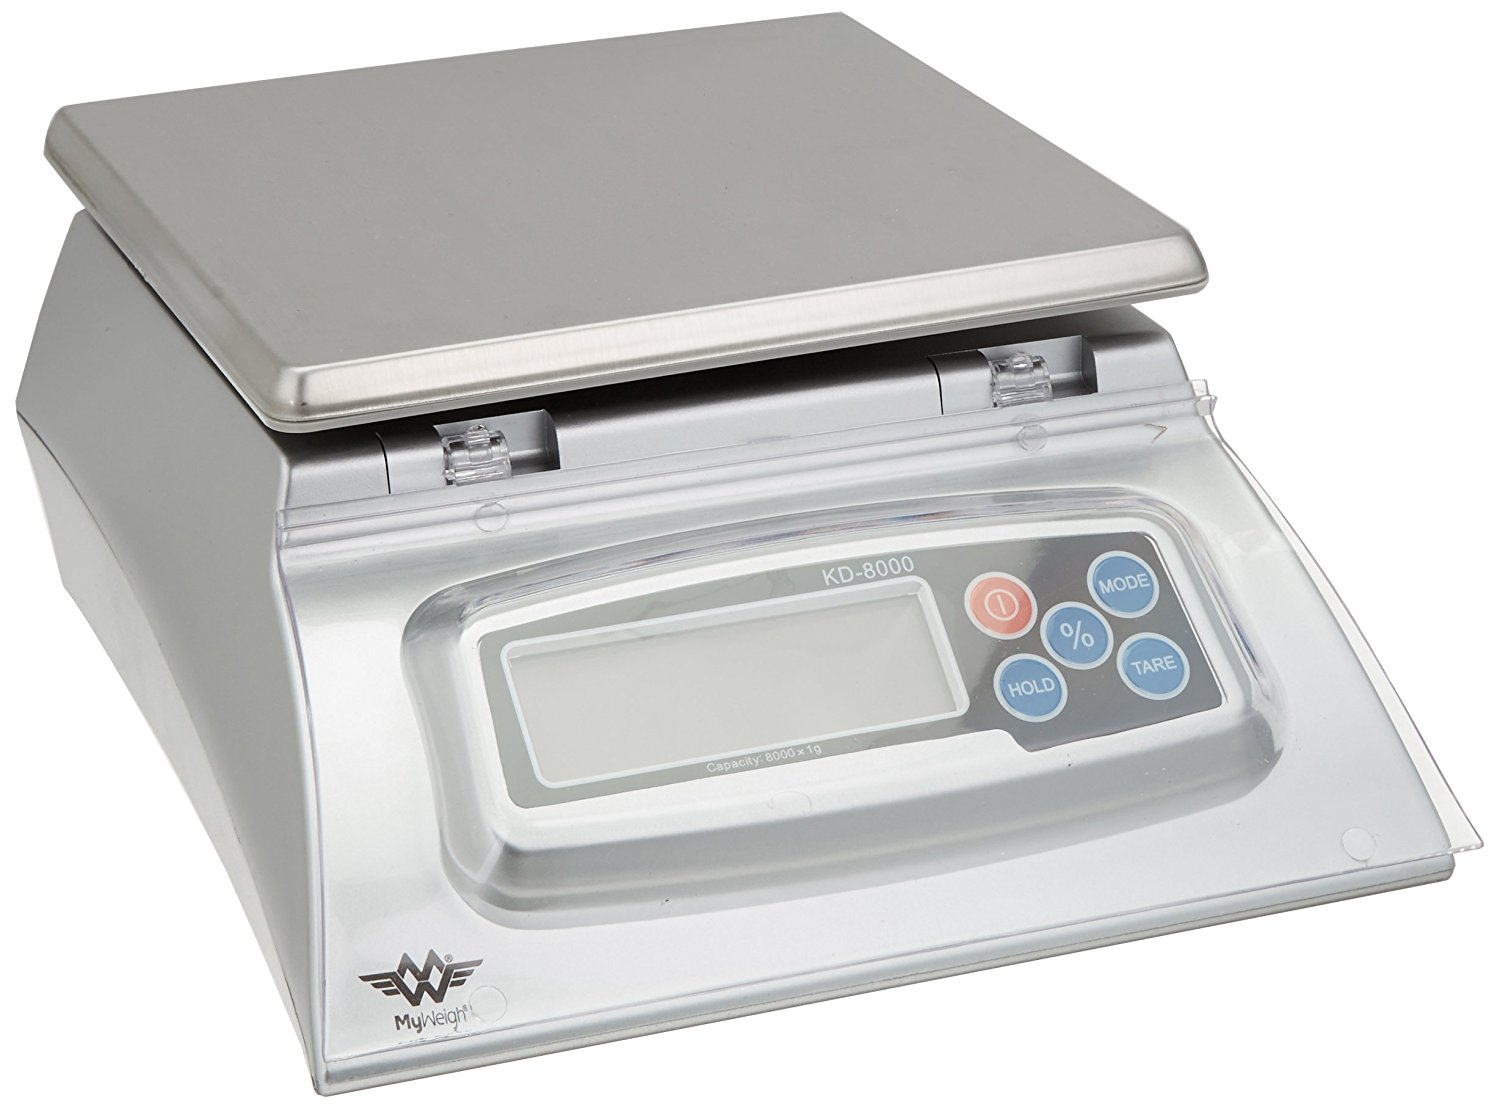 kitchen scales remodeled kitchens scale bakers math kd8000 by my product description